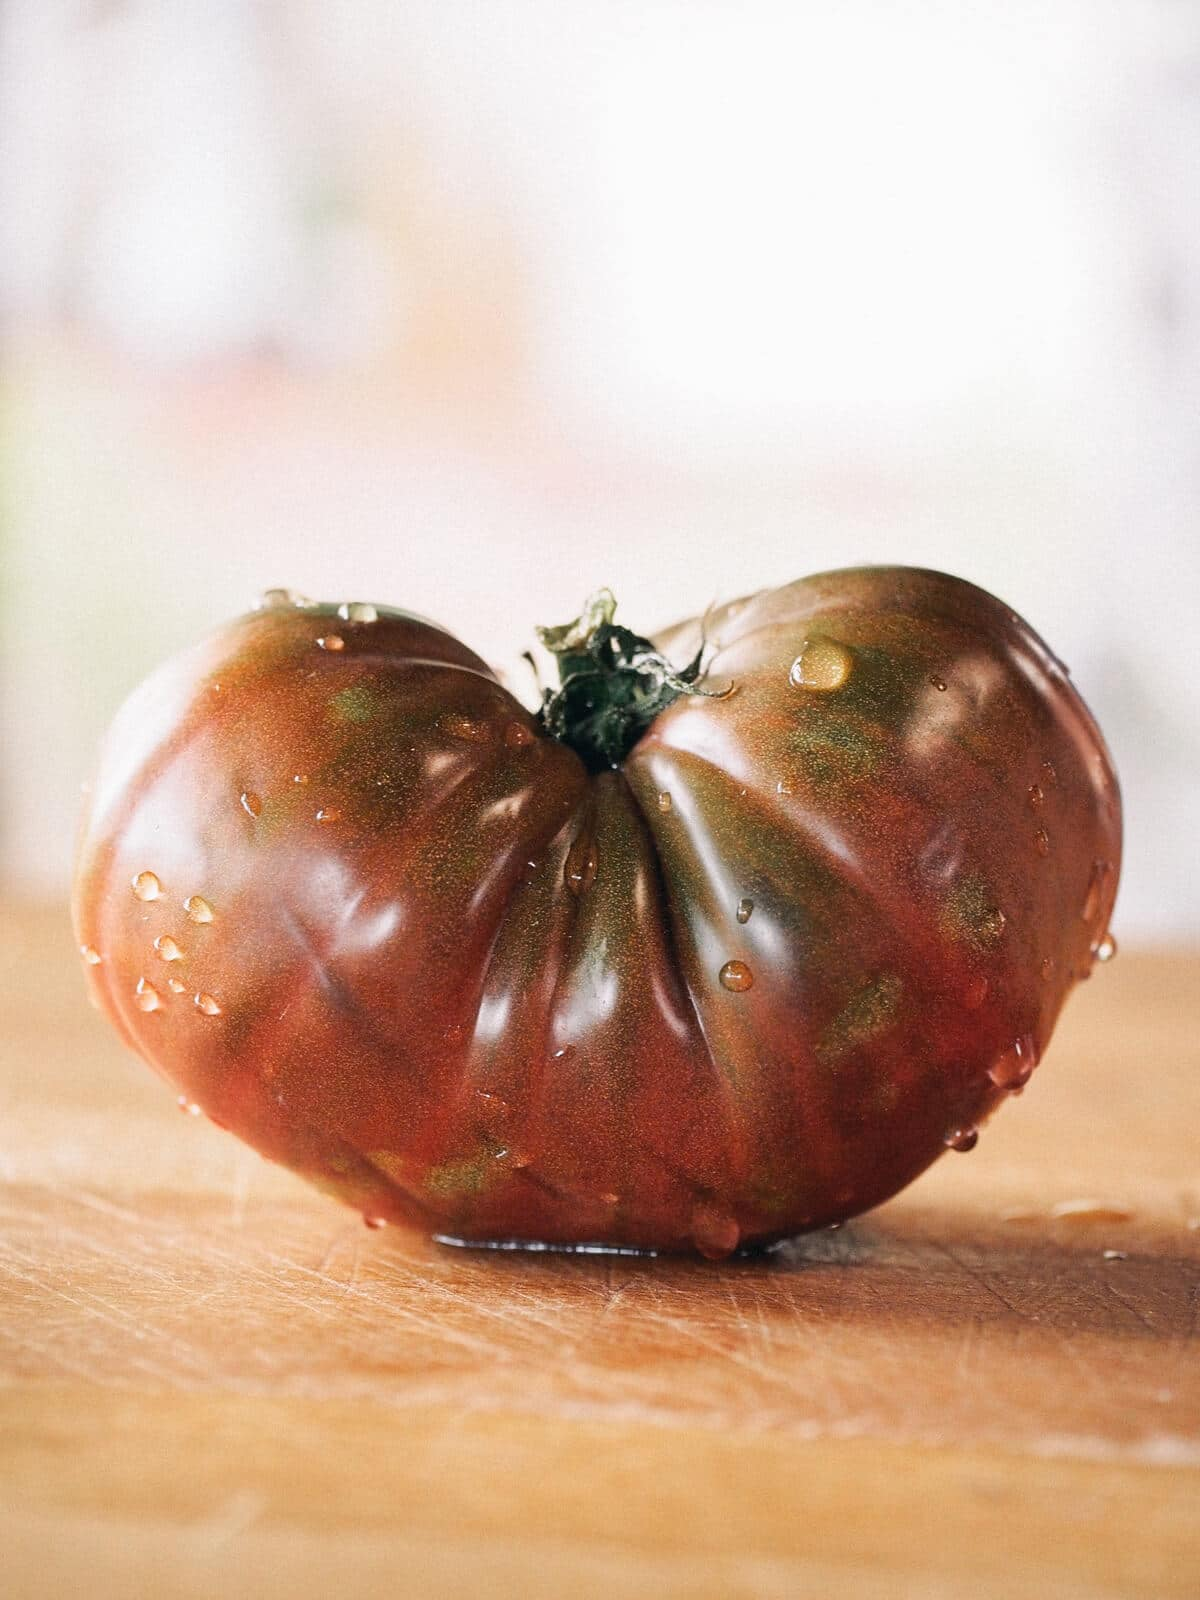 Grow bigger and better tomatoes this summer